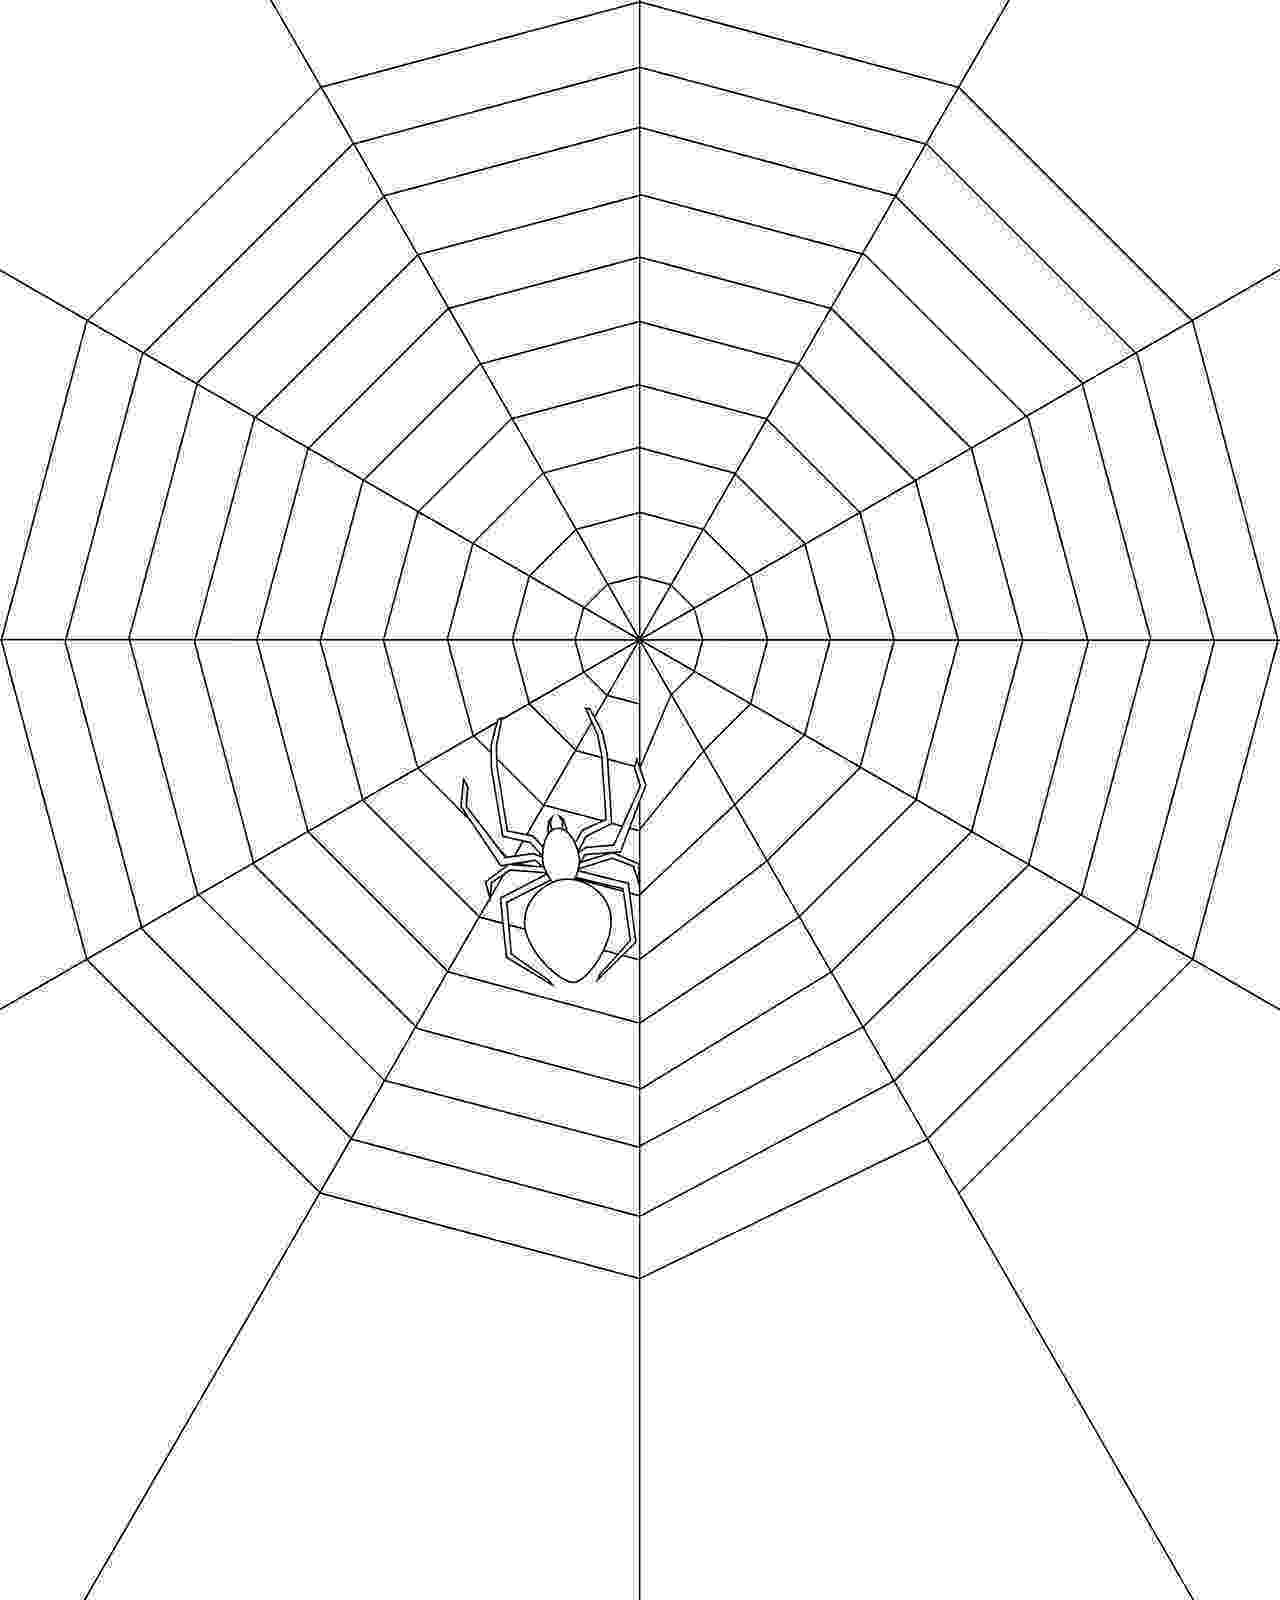 coloring pages websites free printable spider web coloring pages for kids websites coloring pages